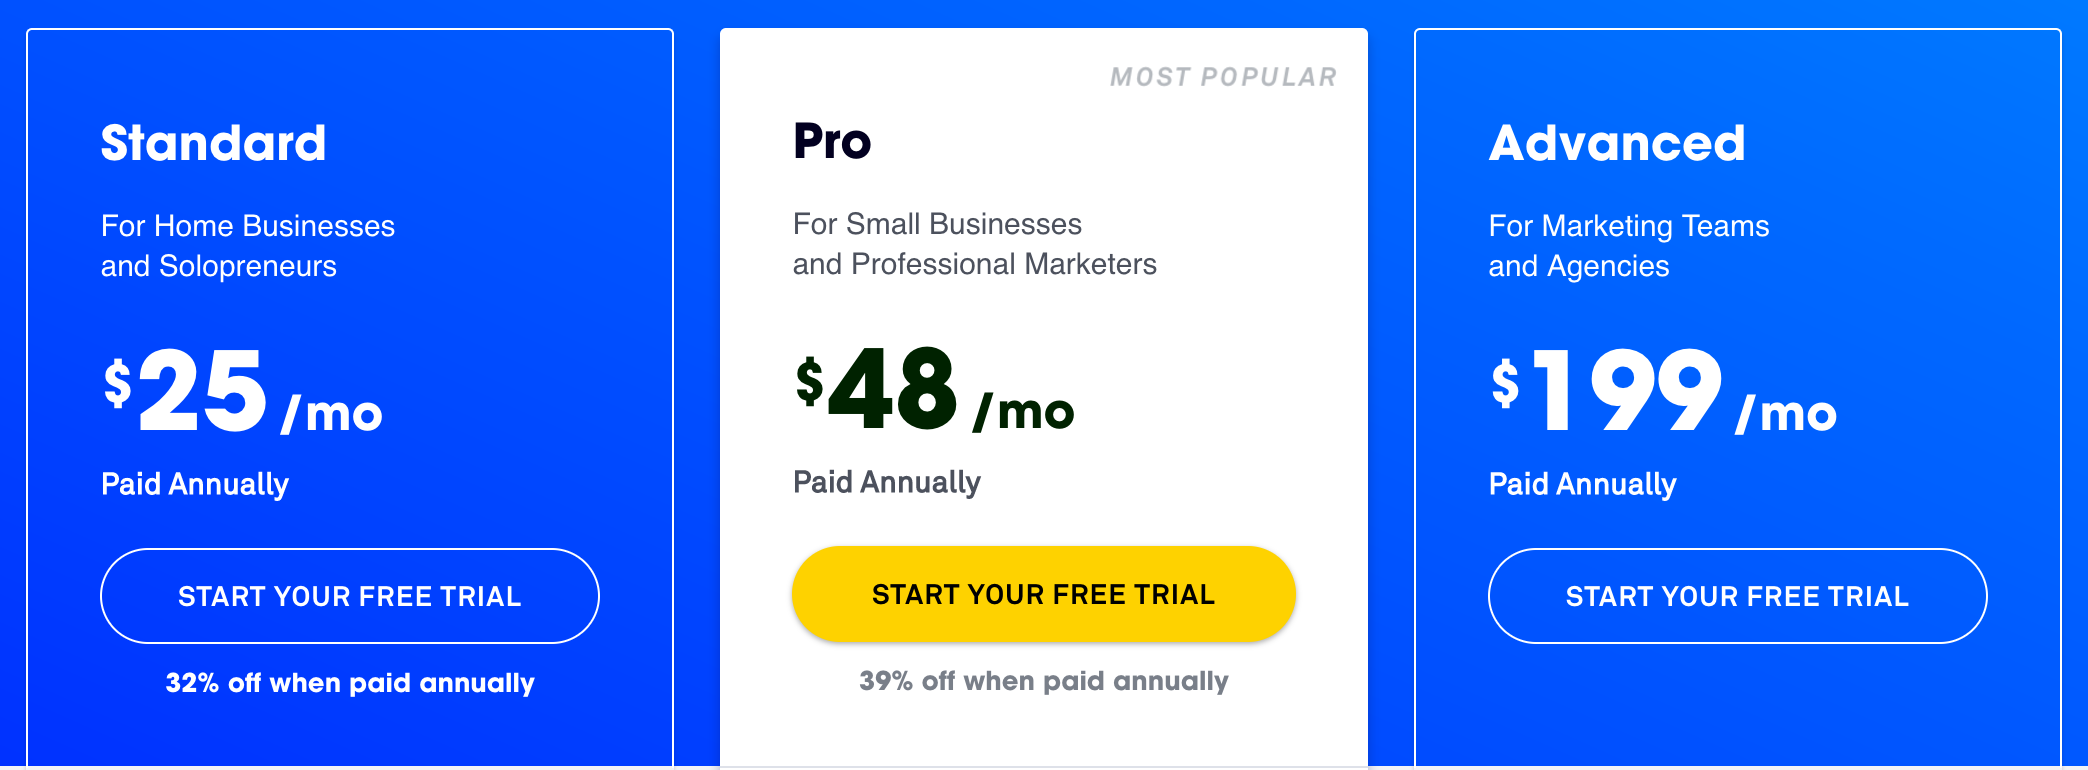 The Leadpages Pricing PDFs